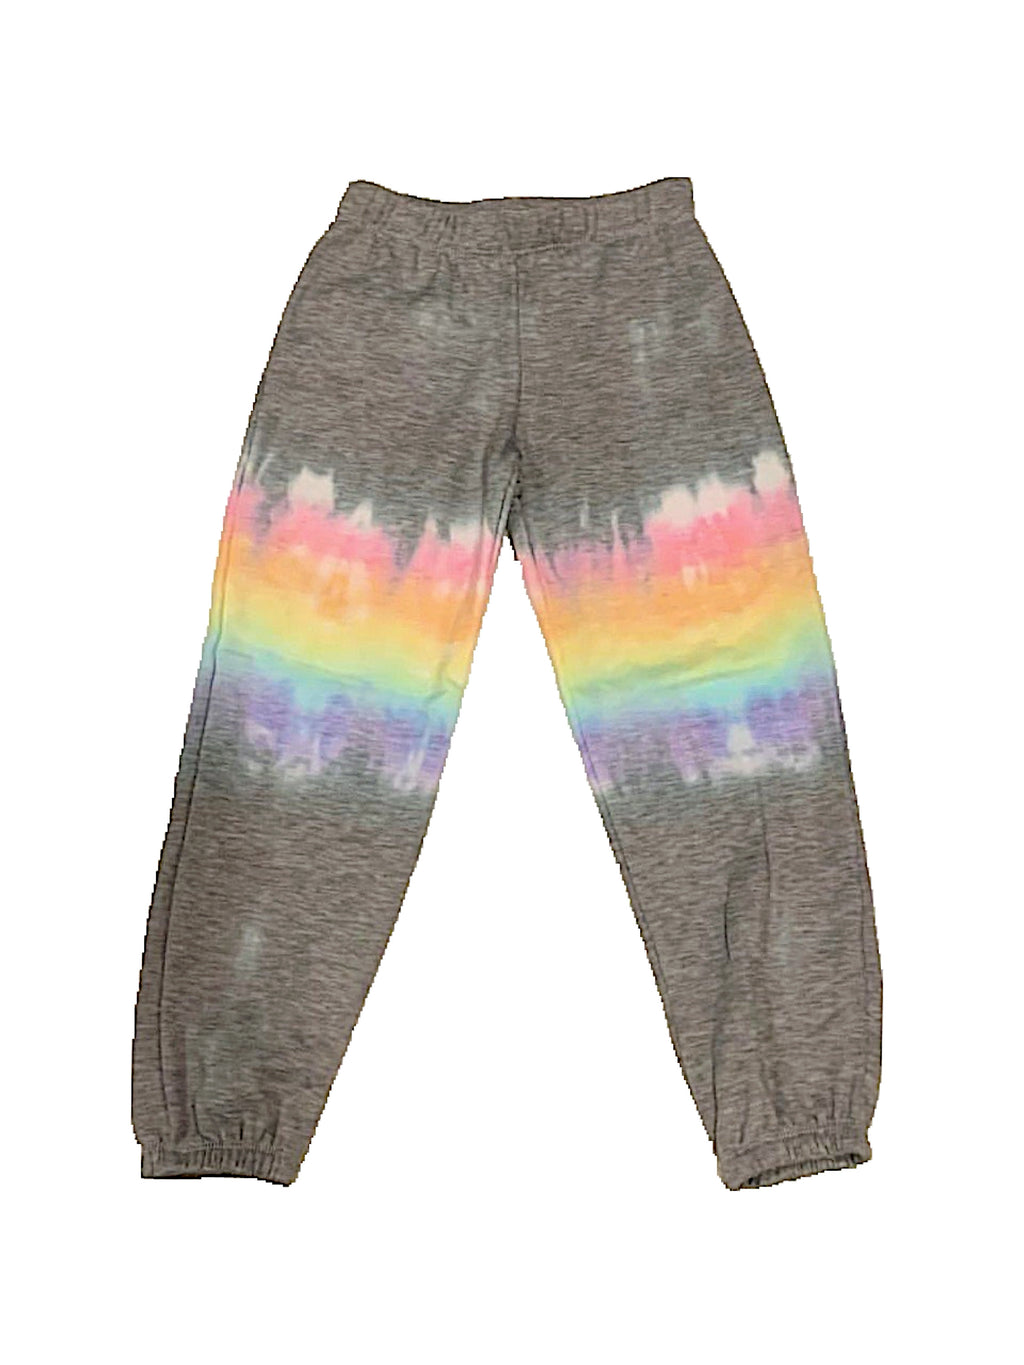 Firehouse Pastel Stripe Tie Dye Sweatpants